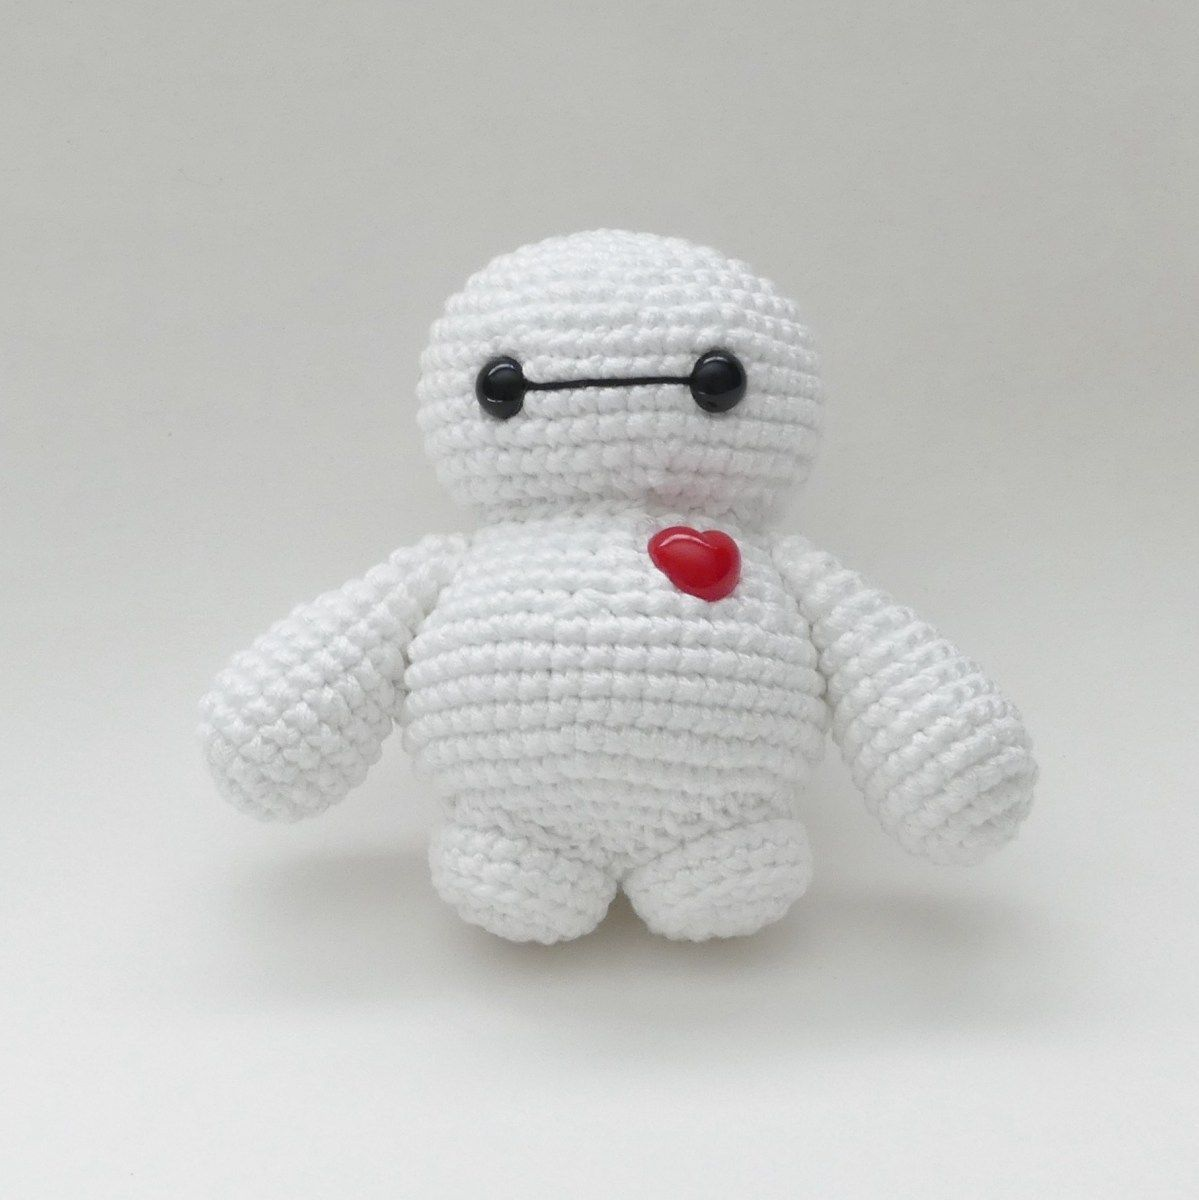 Photo of #amigurumi #crochet #knitting #amigurumipatterns #crochetafghanpatterns